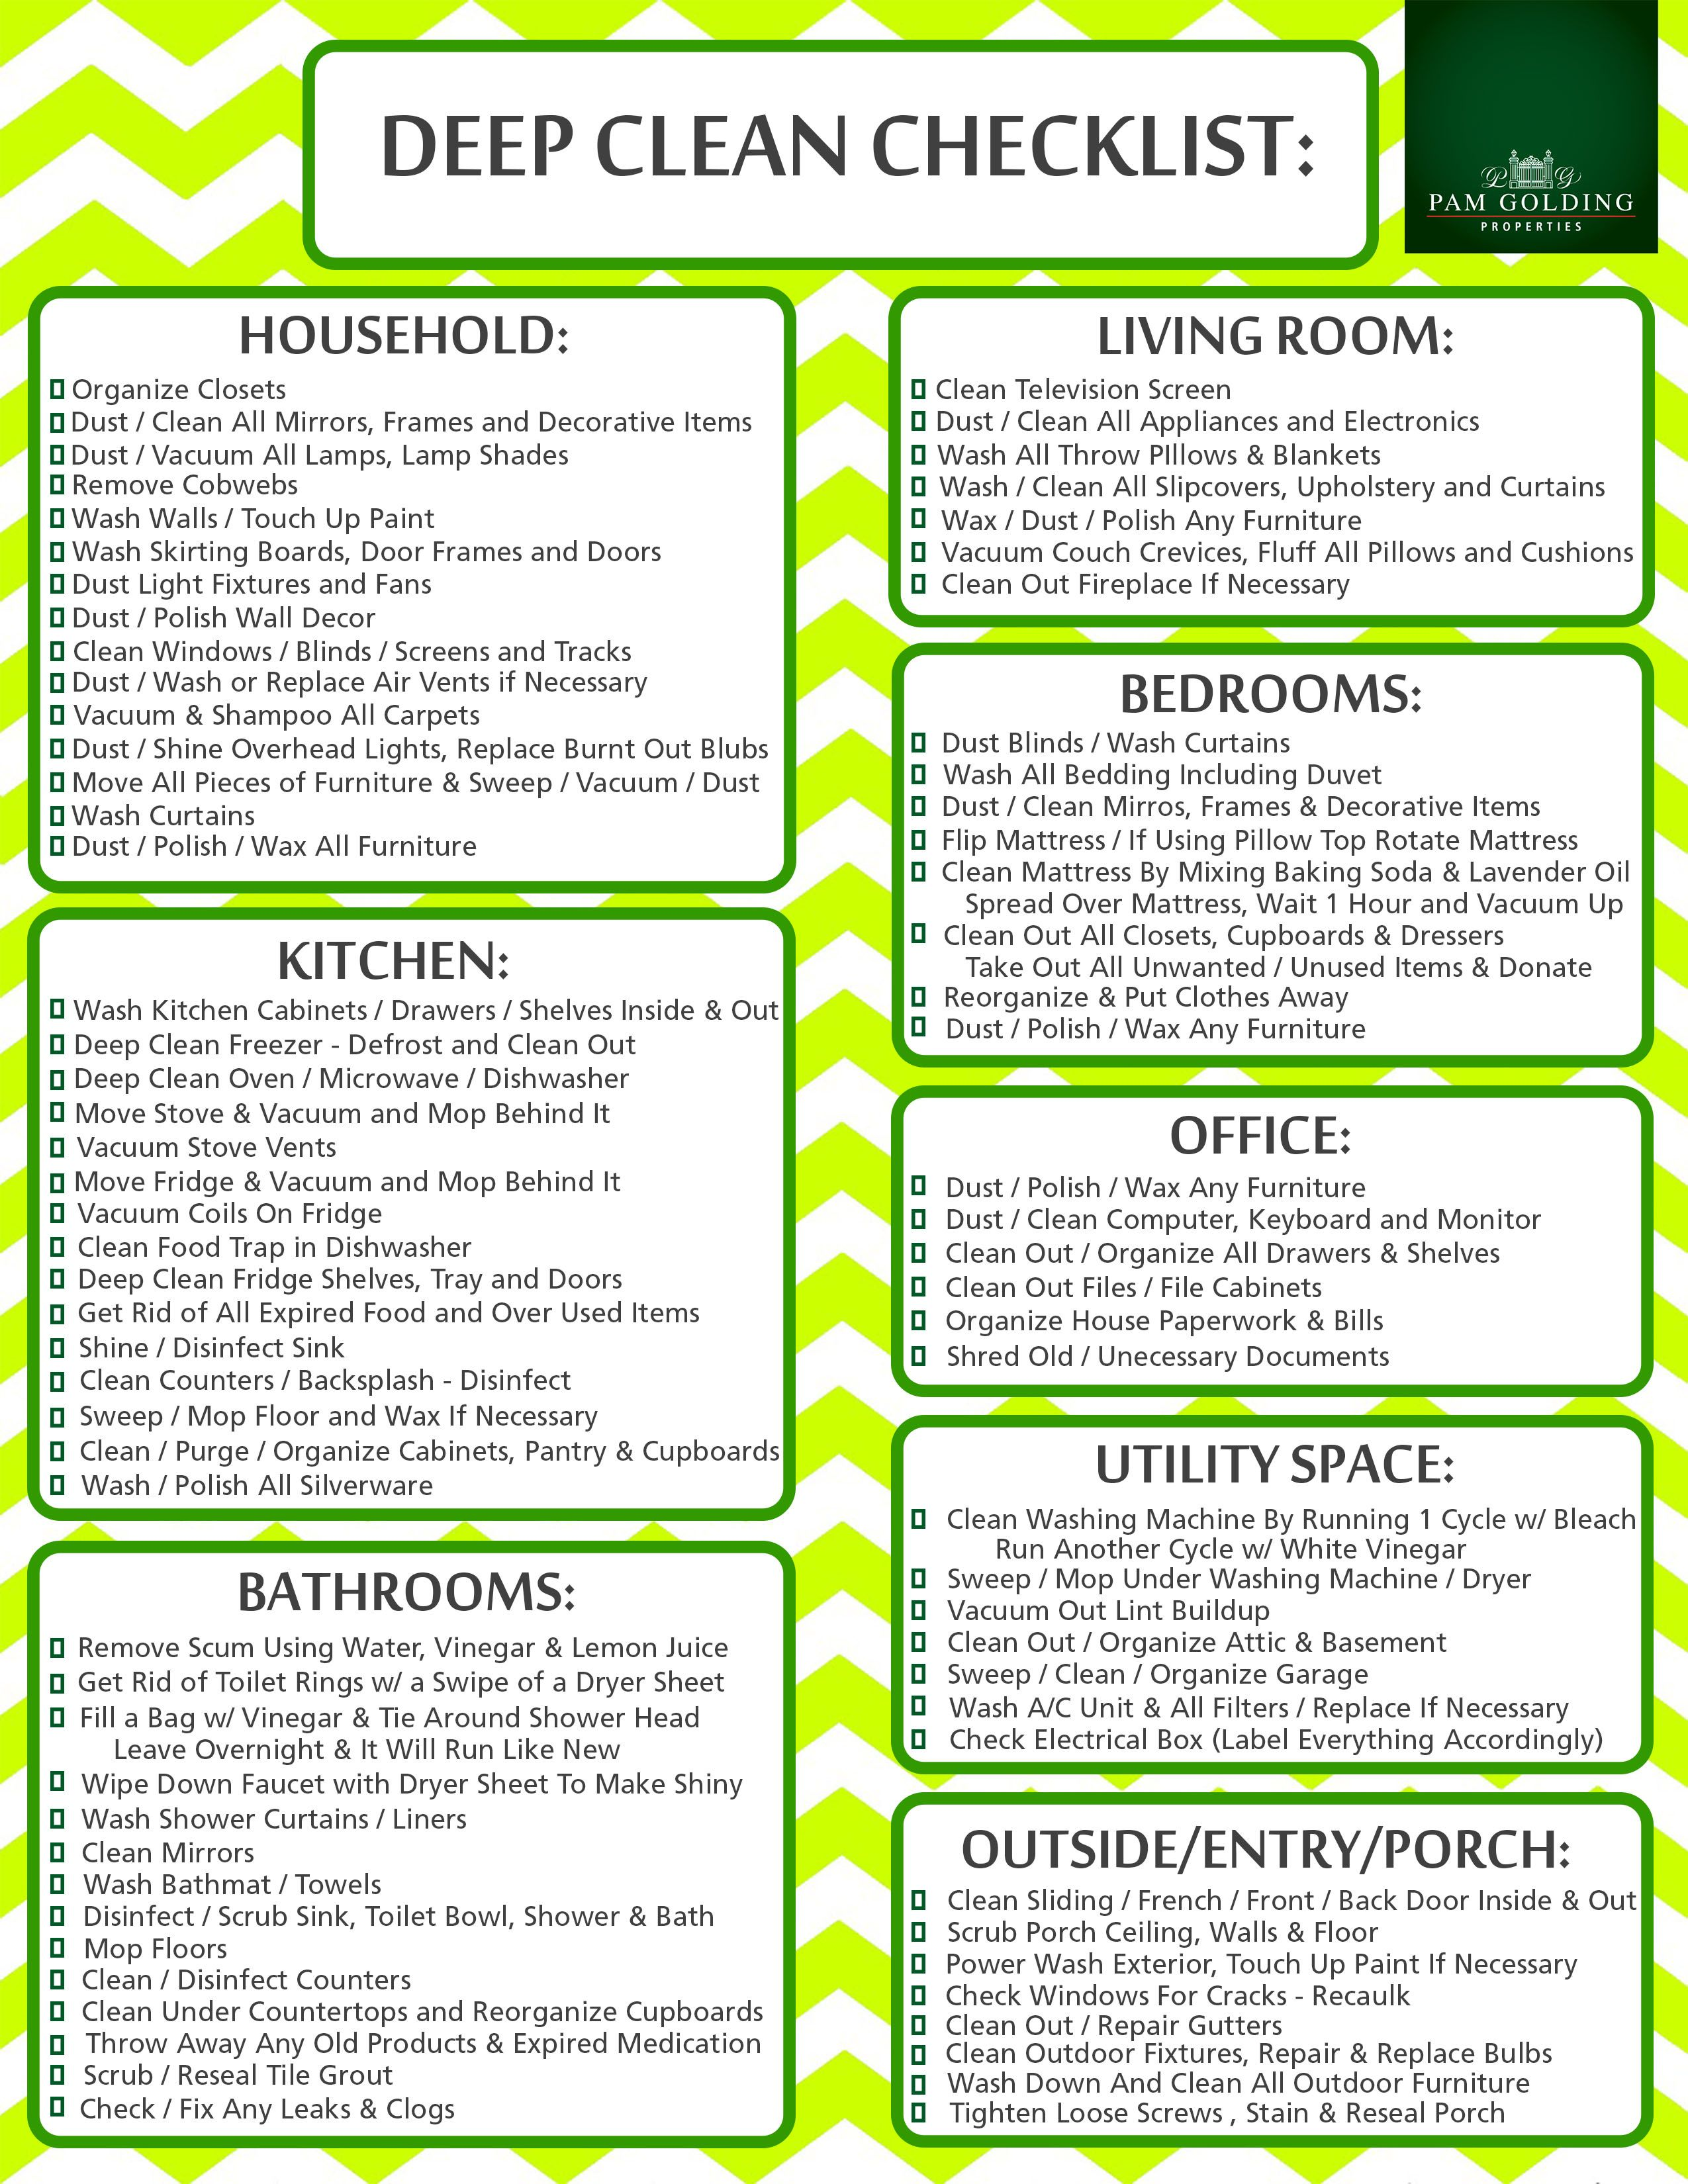 CLICK THE IMAGE TO PRINT YOUR DEEP CLEAN CHECKLIST! Perfect for ...